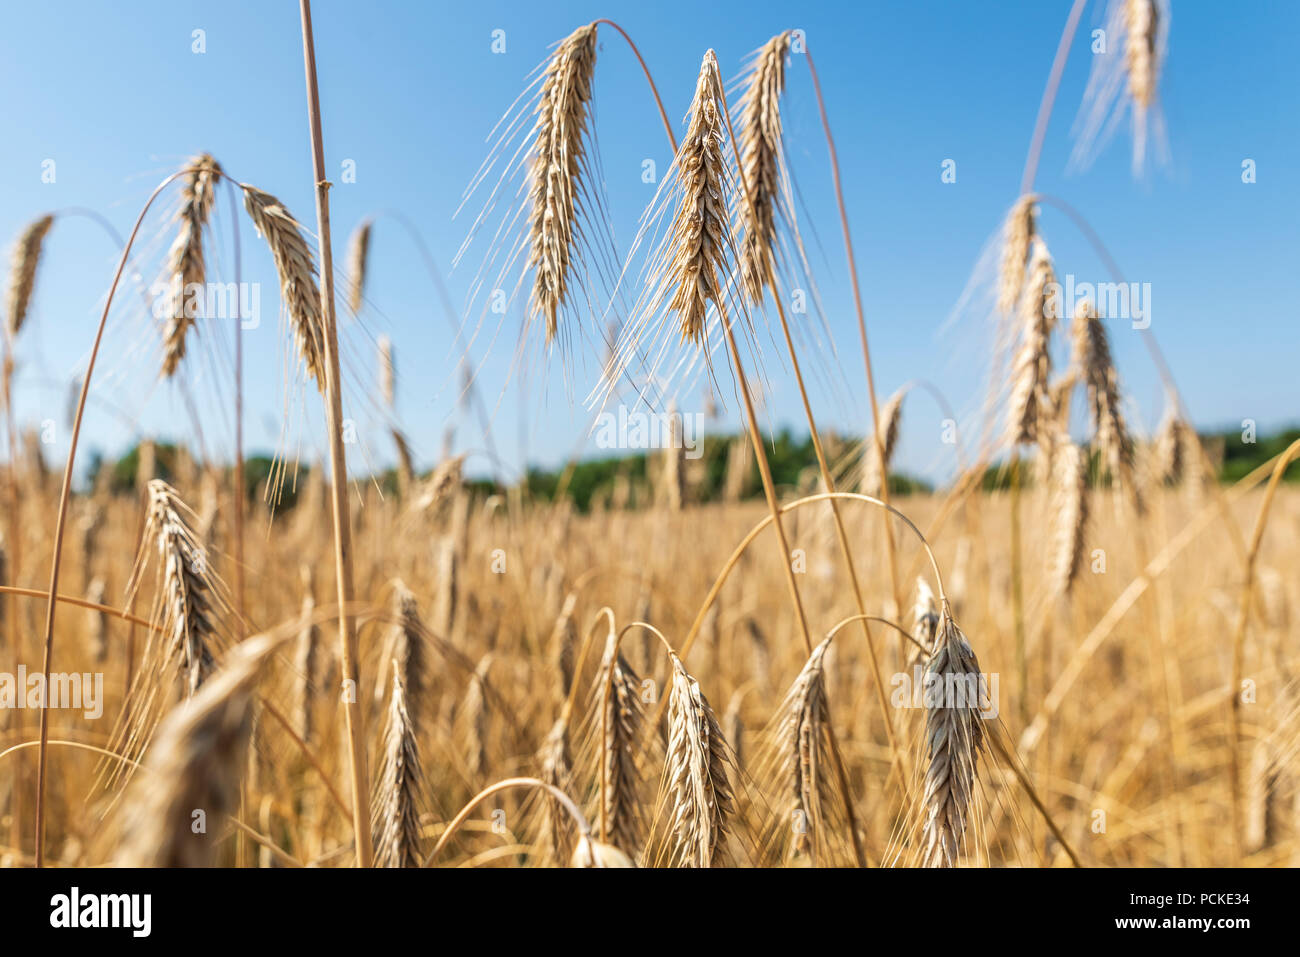 Ears of wheat against blue sky. - Stock Image